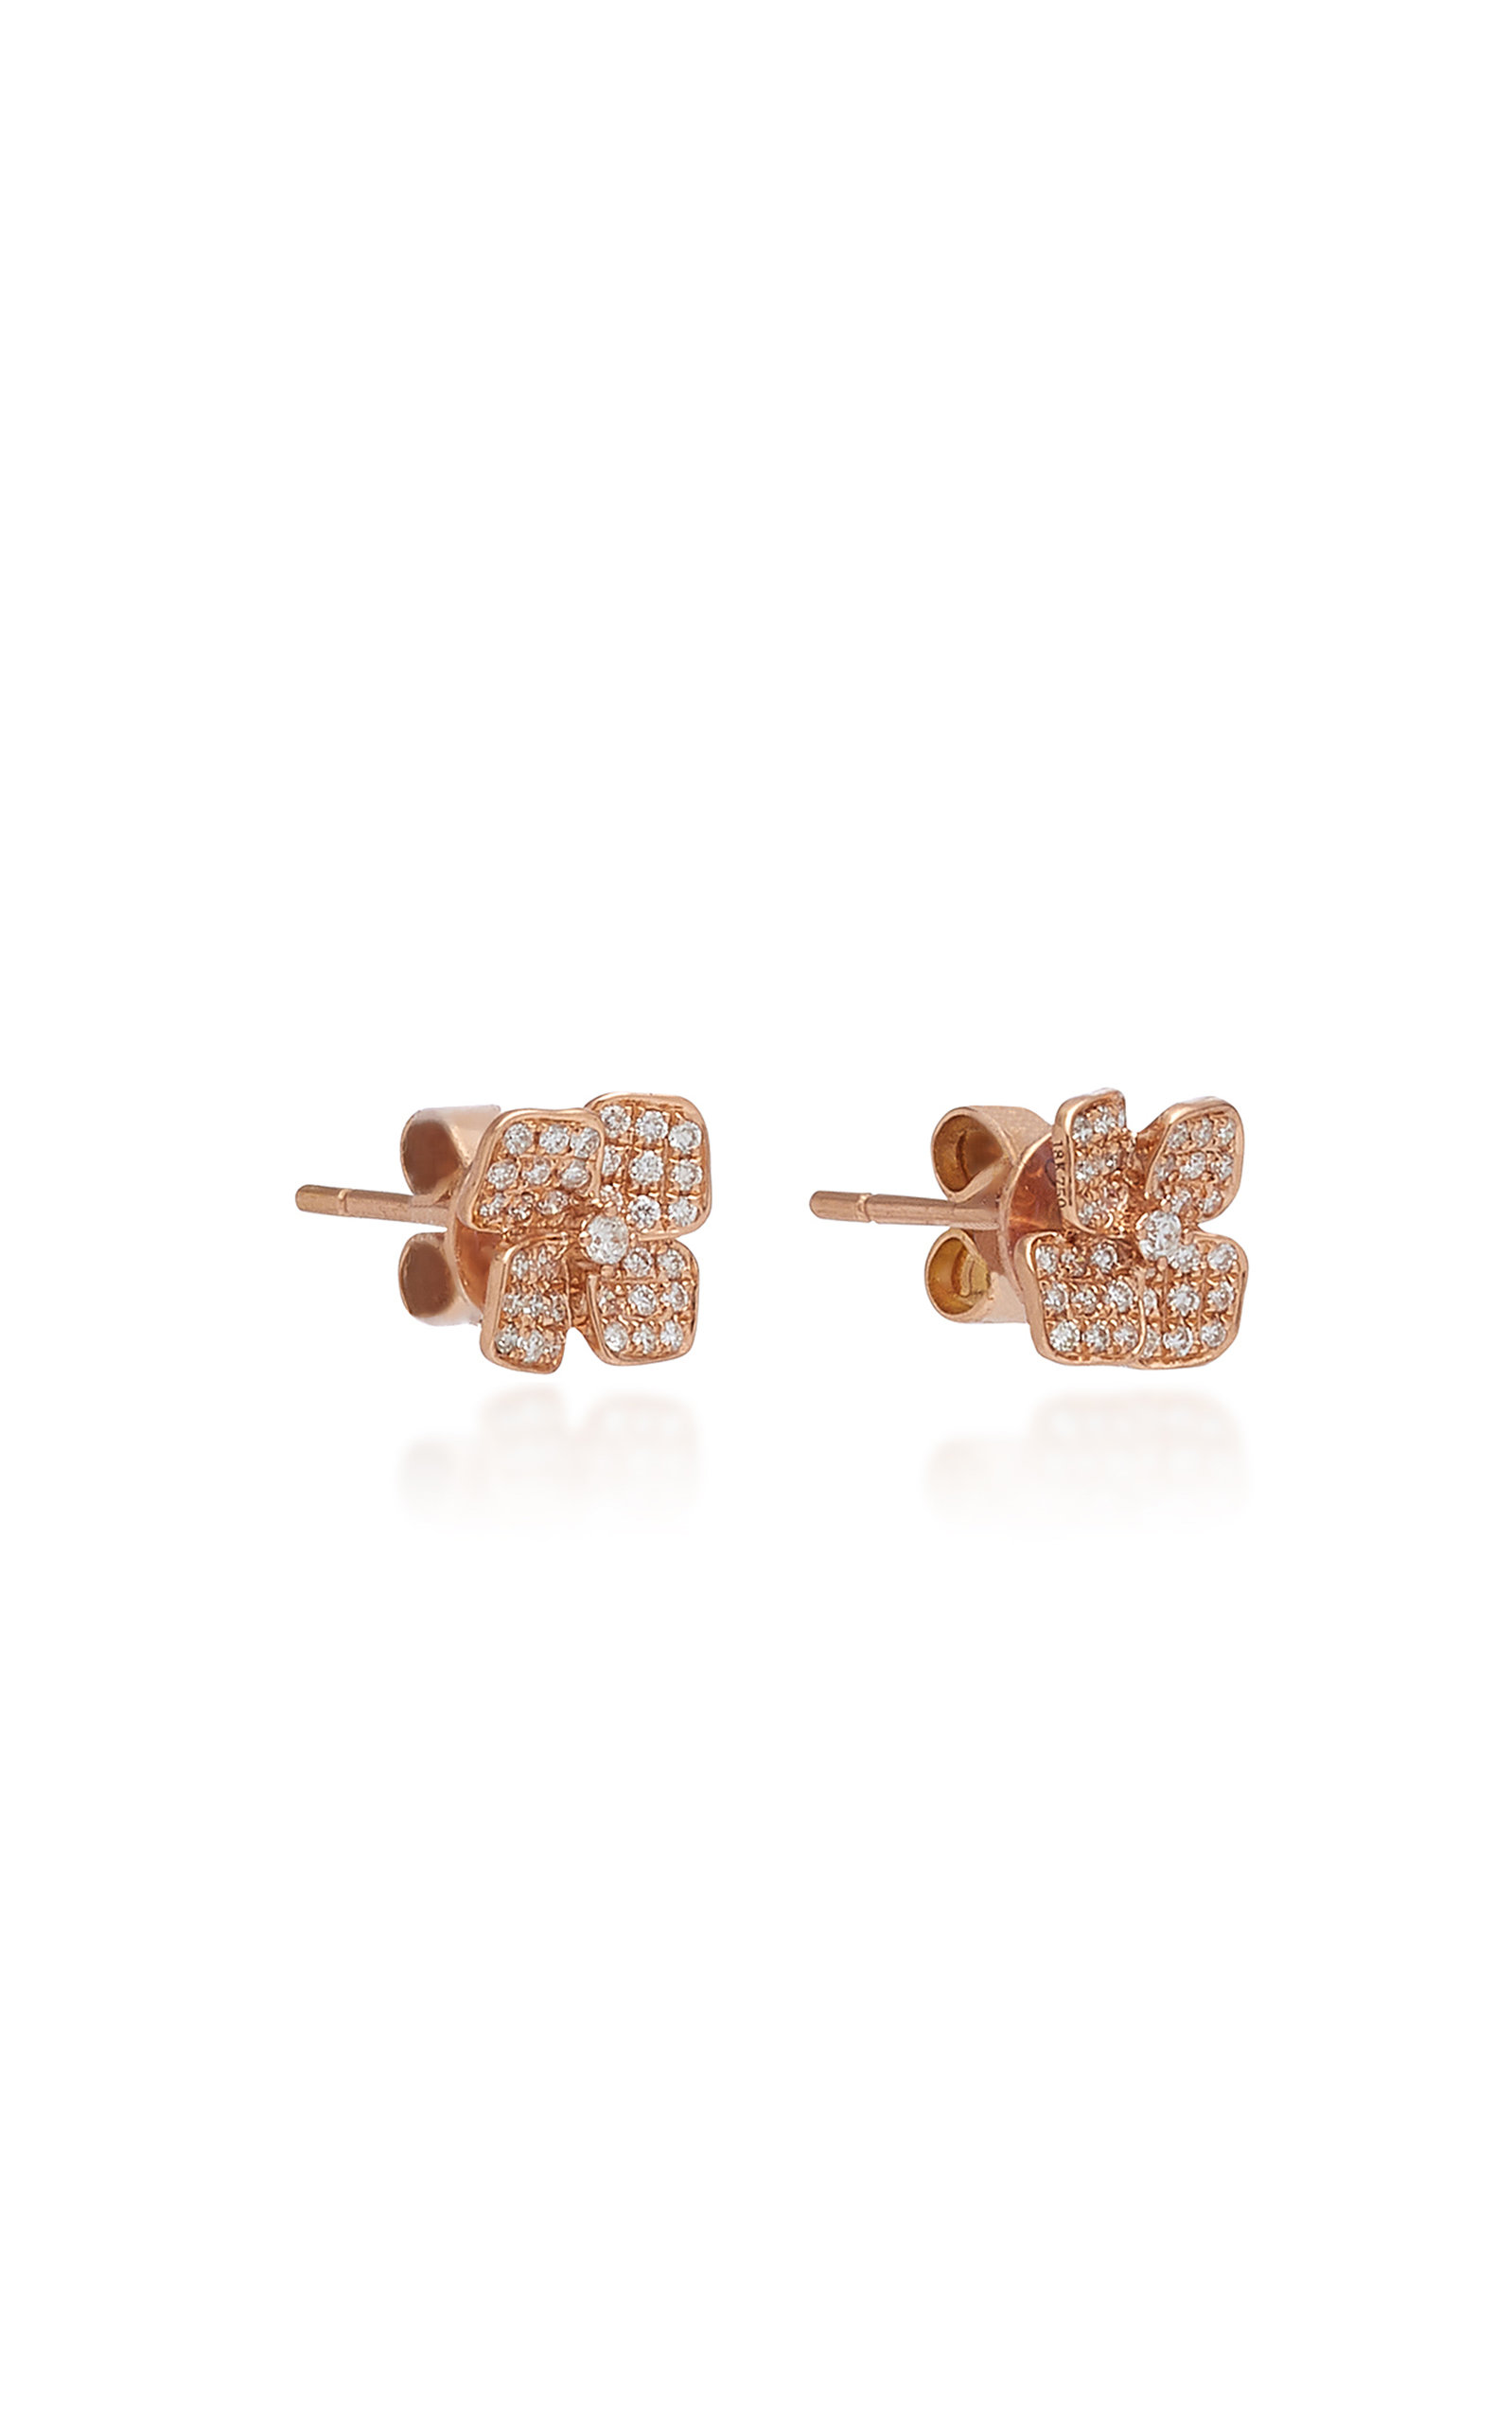 0689622d0 Anita KoFloral 18K Gold And Diamond Stud Earrings. CLOSE. Loading. Loading